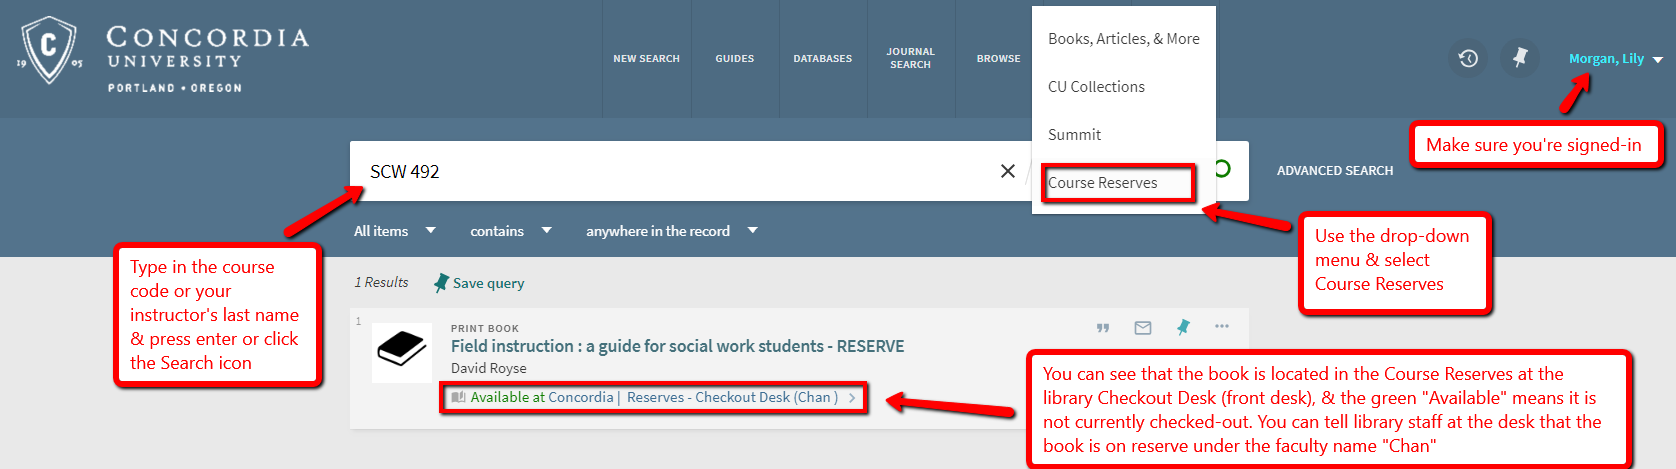 Screenshot of OneSearch screen searching for course reserves